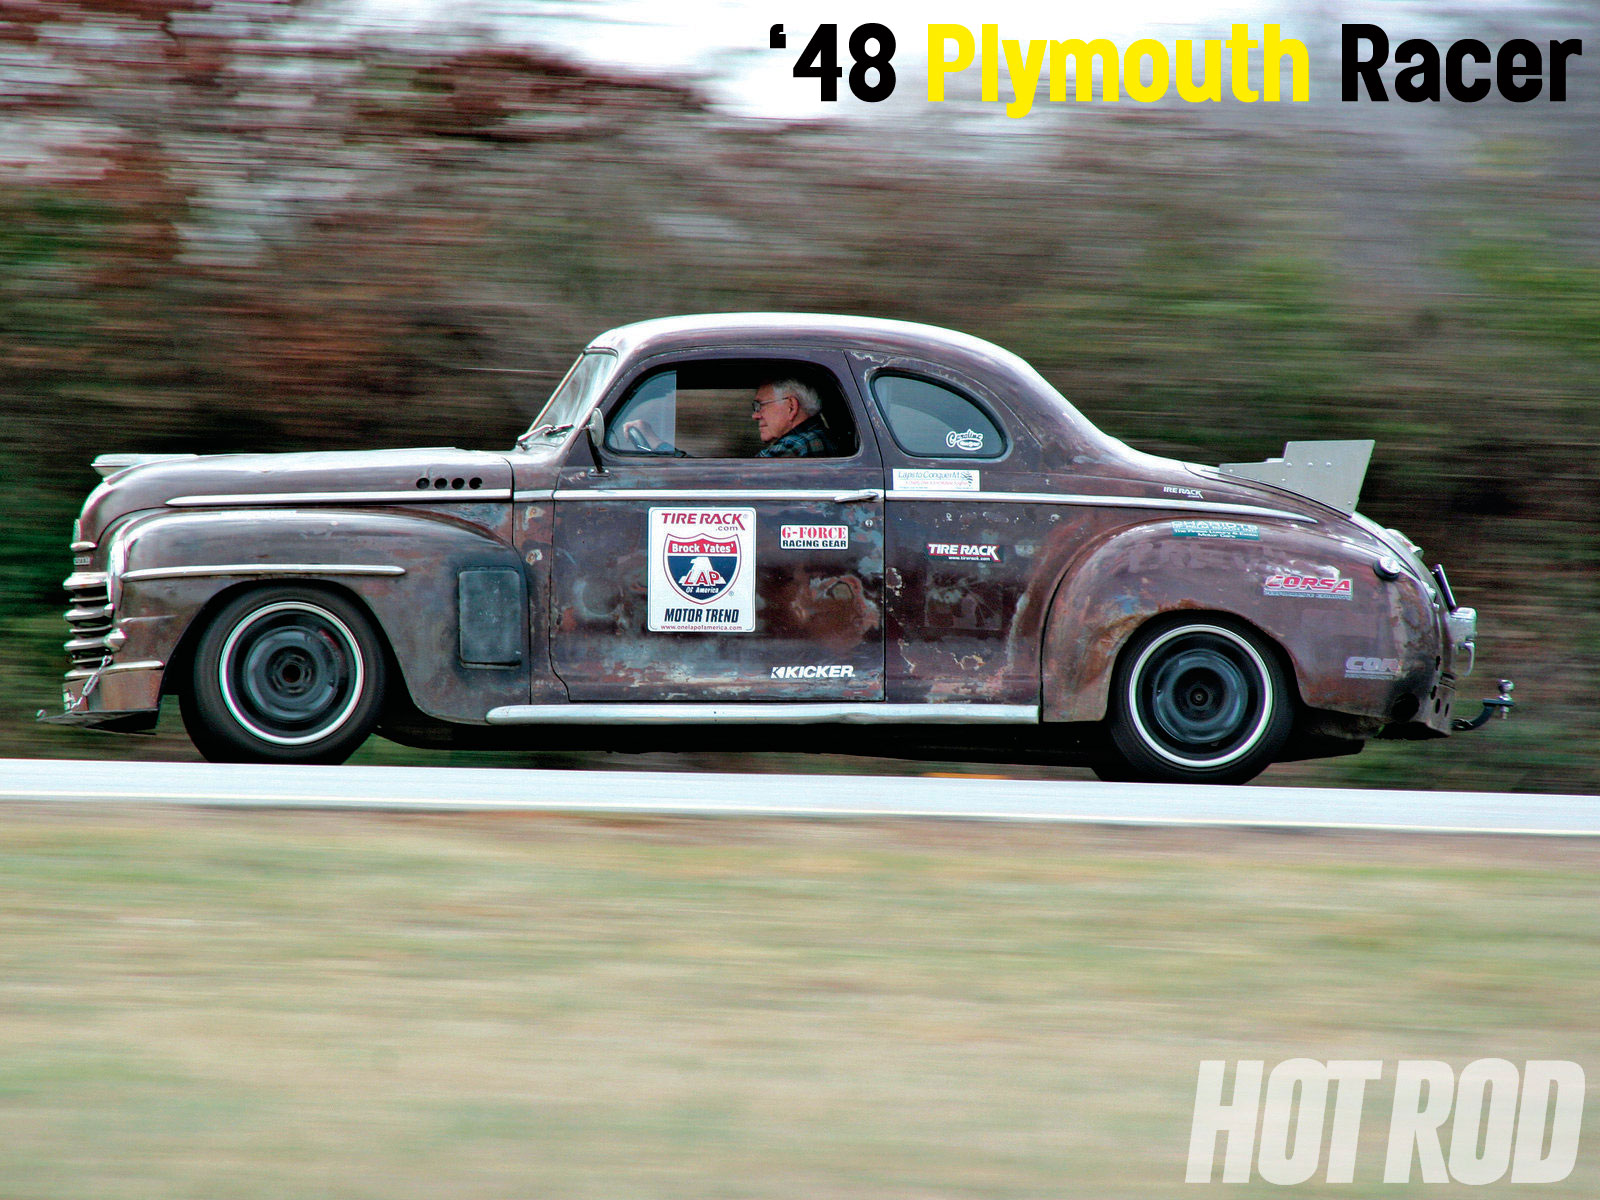 hight resolution of hdrp 1106 48 plymouth racer